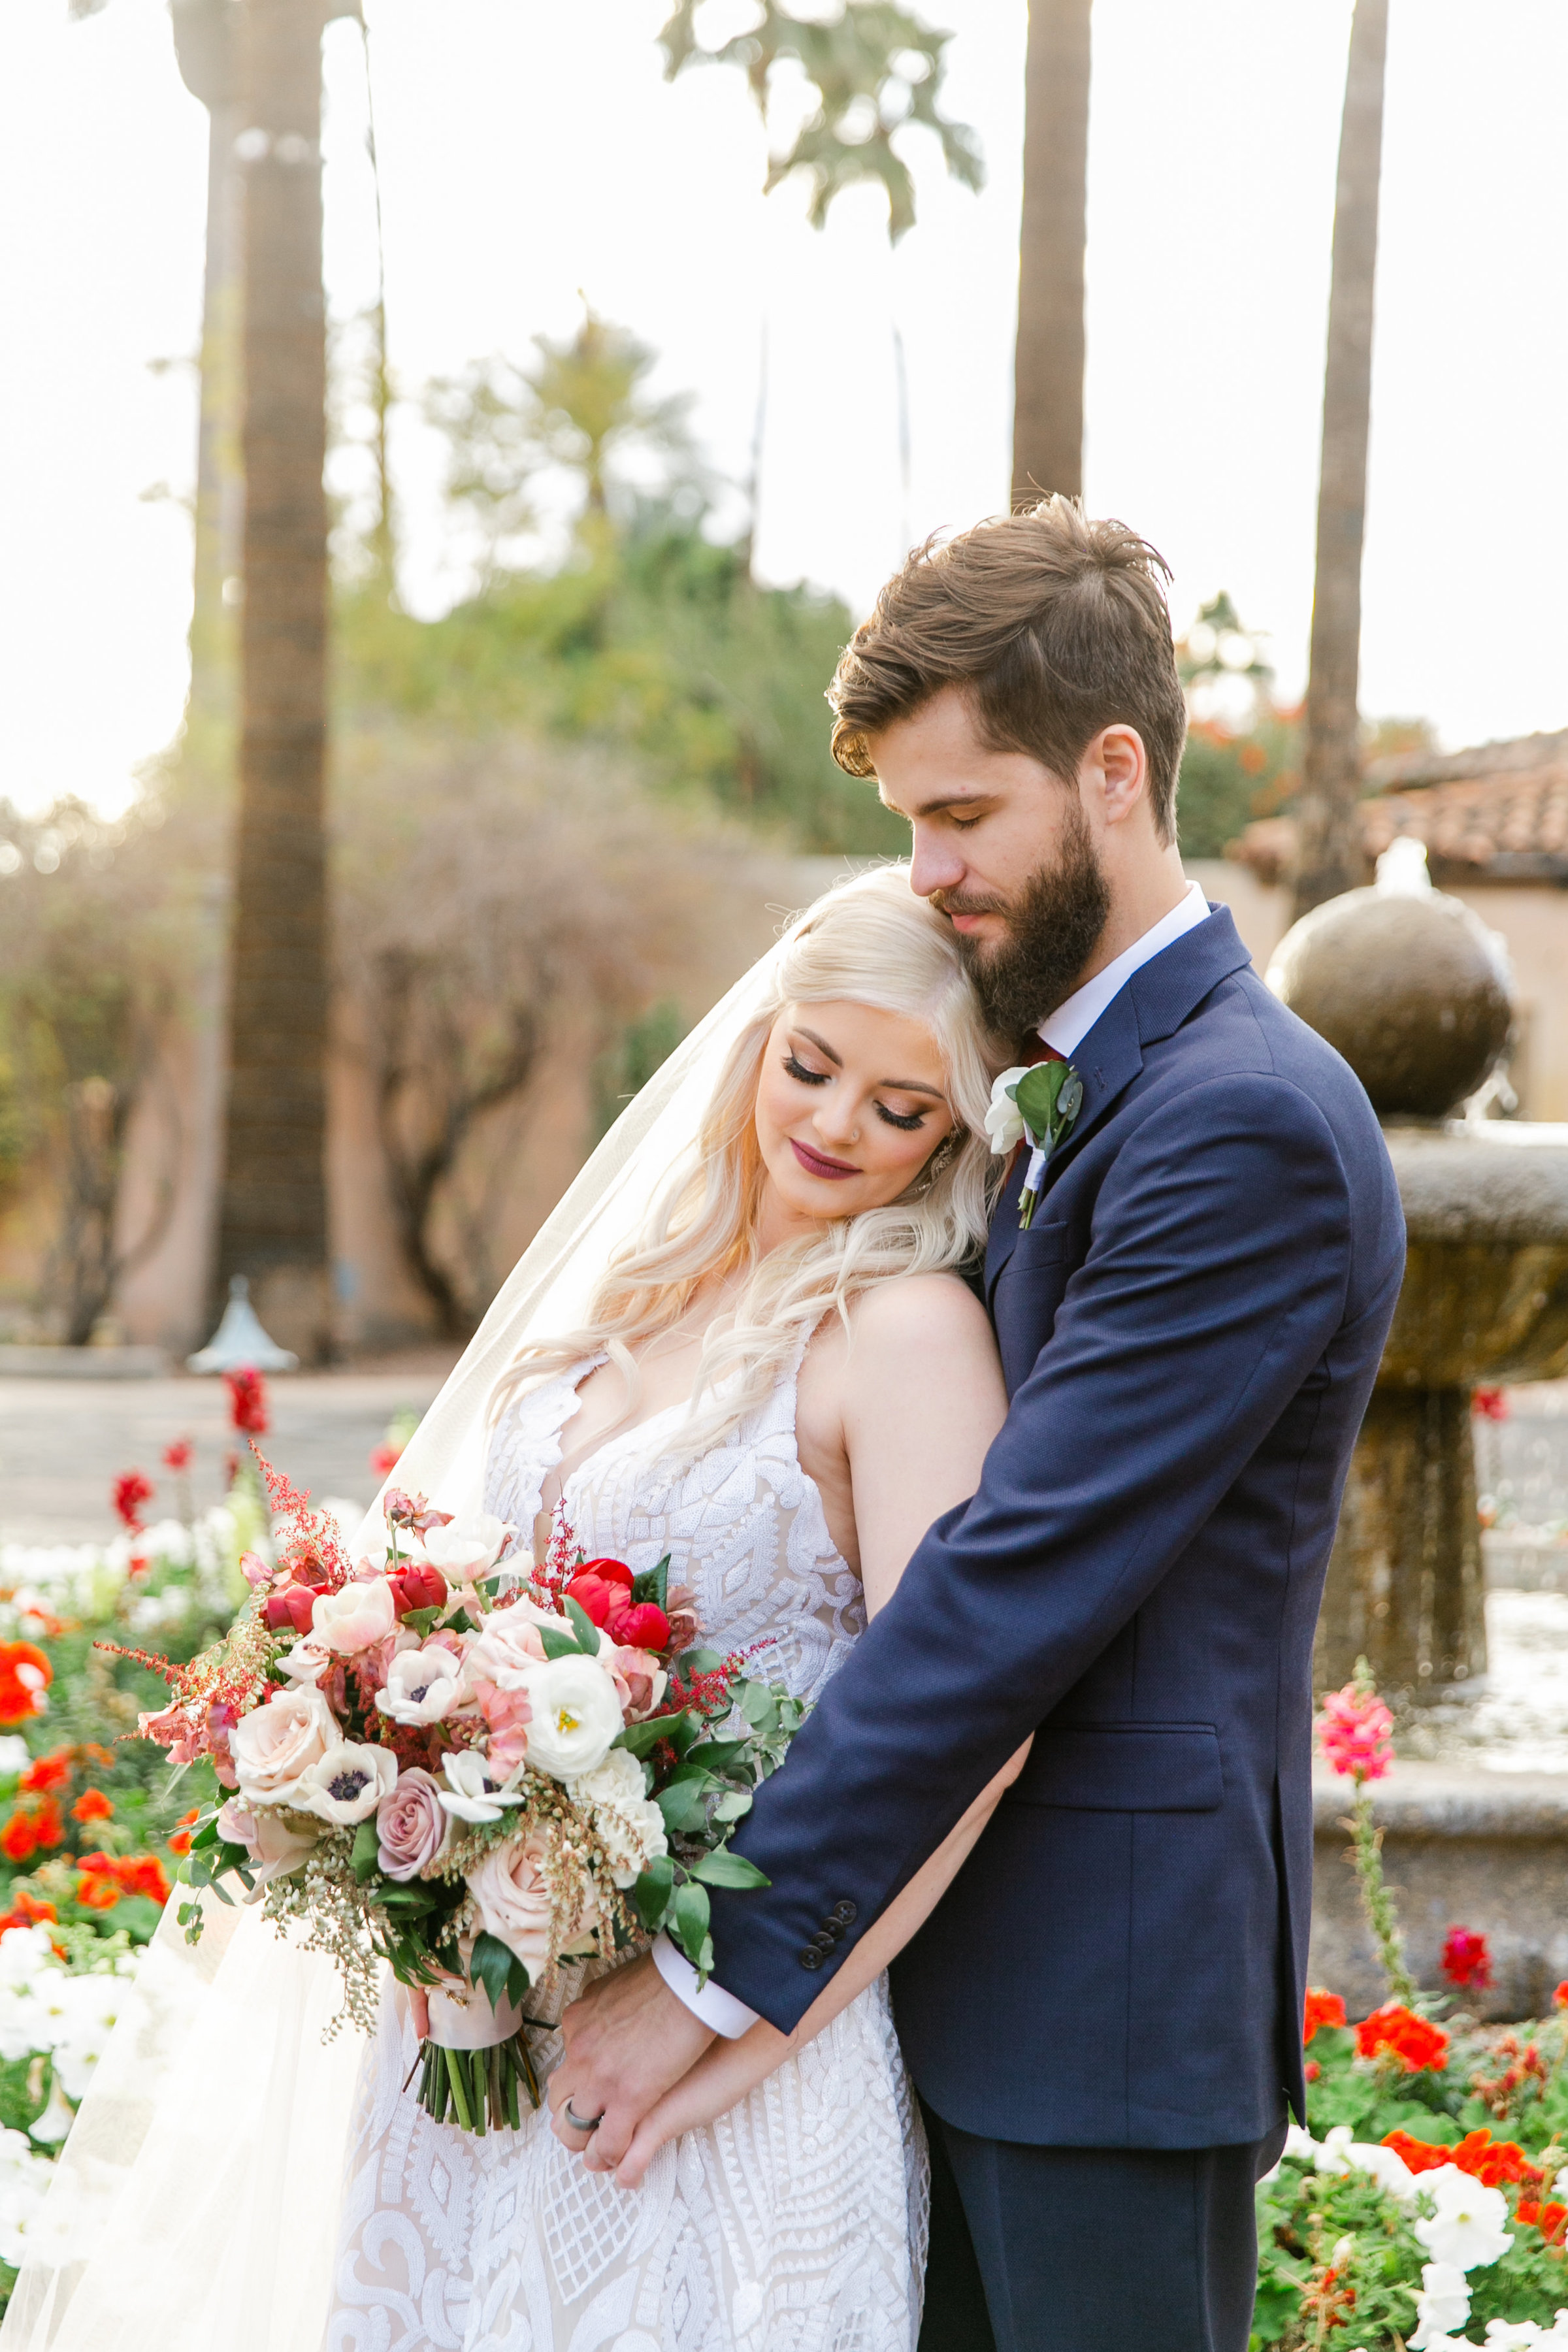 Karlie Colleen Photography - The Royal Palms Wedding - Some Like It Classic - Alex & Sam-543